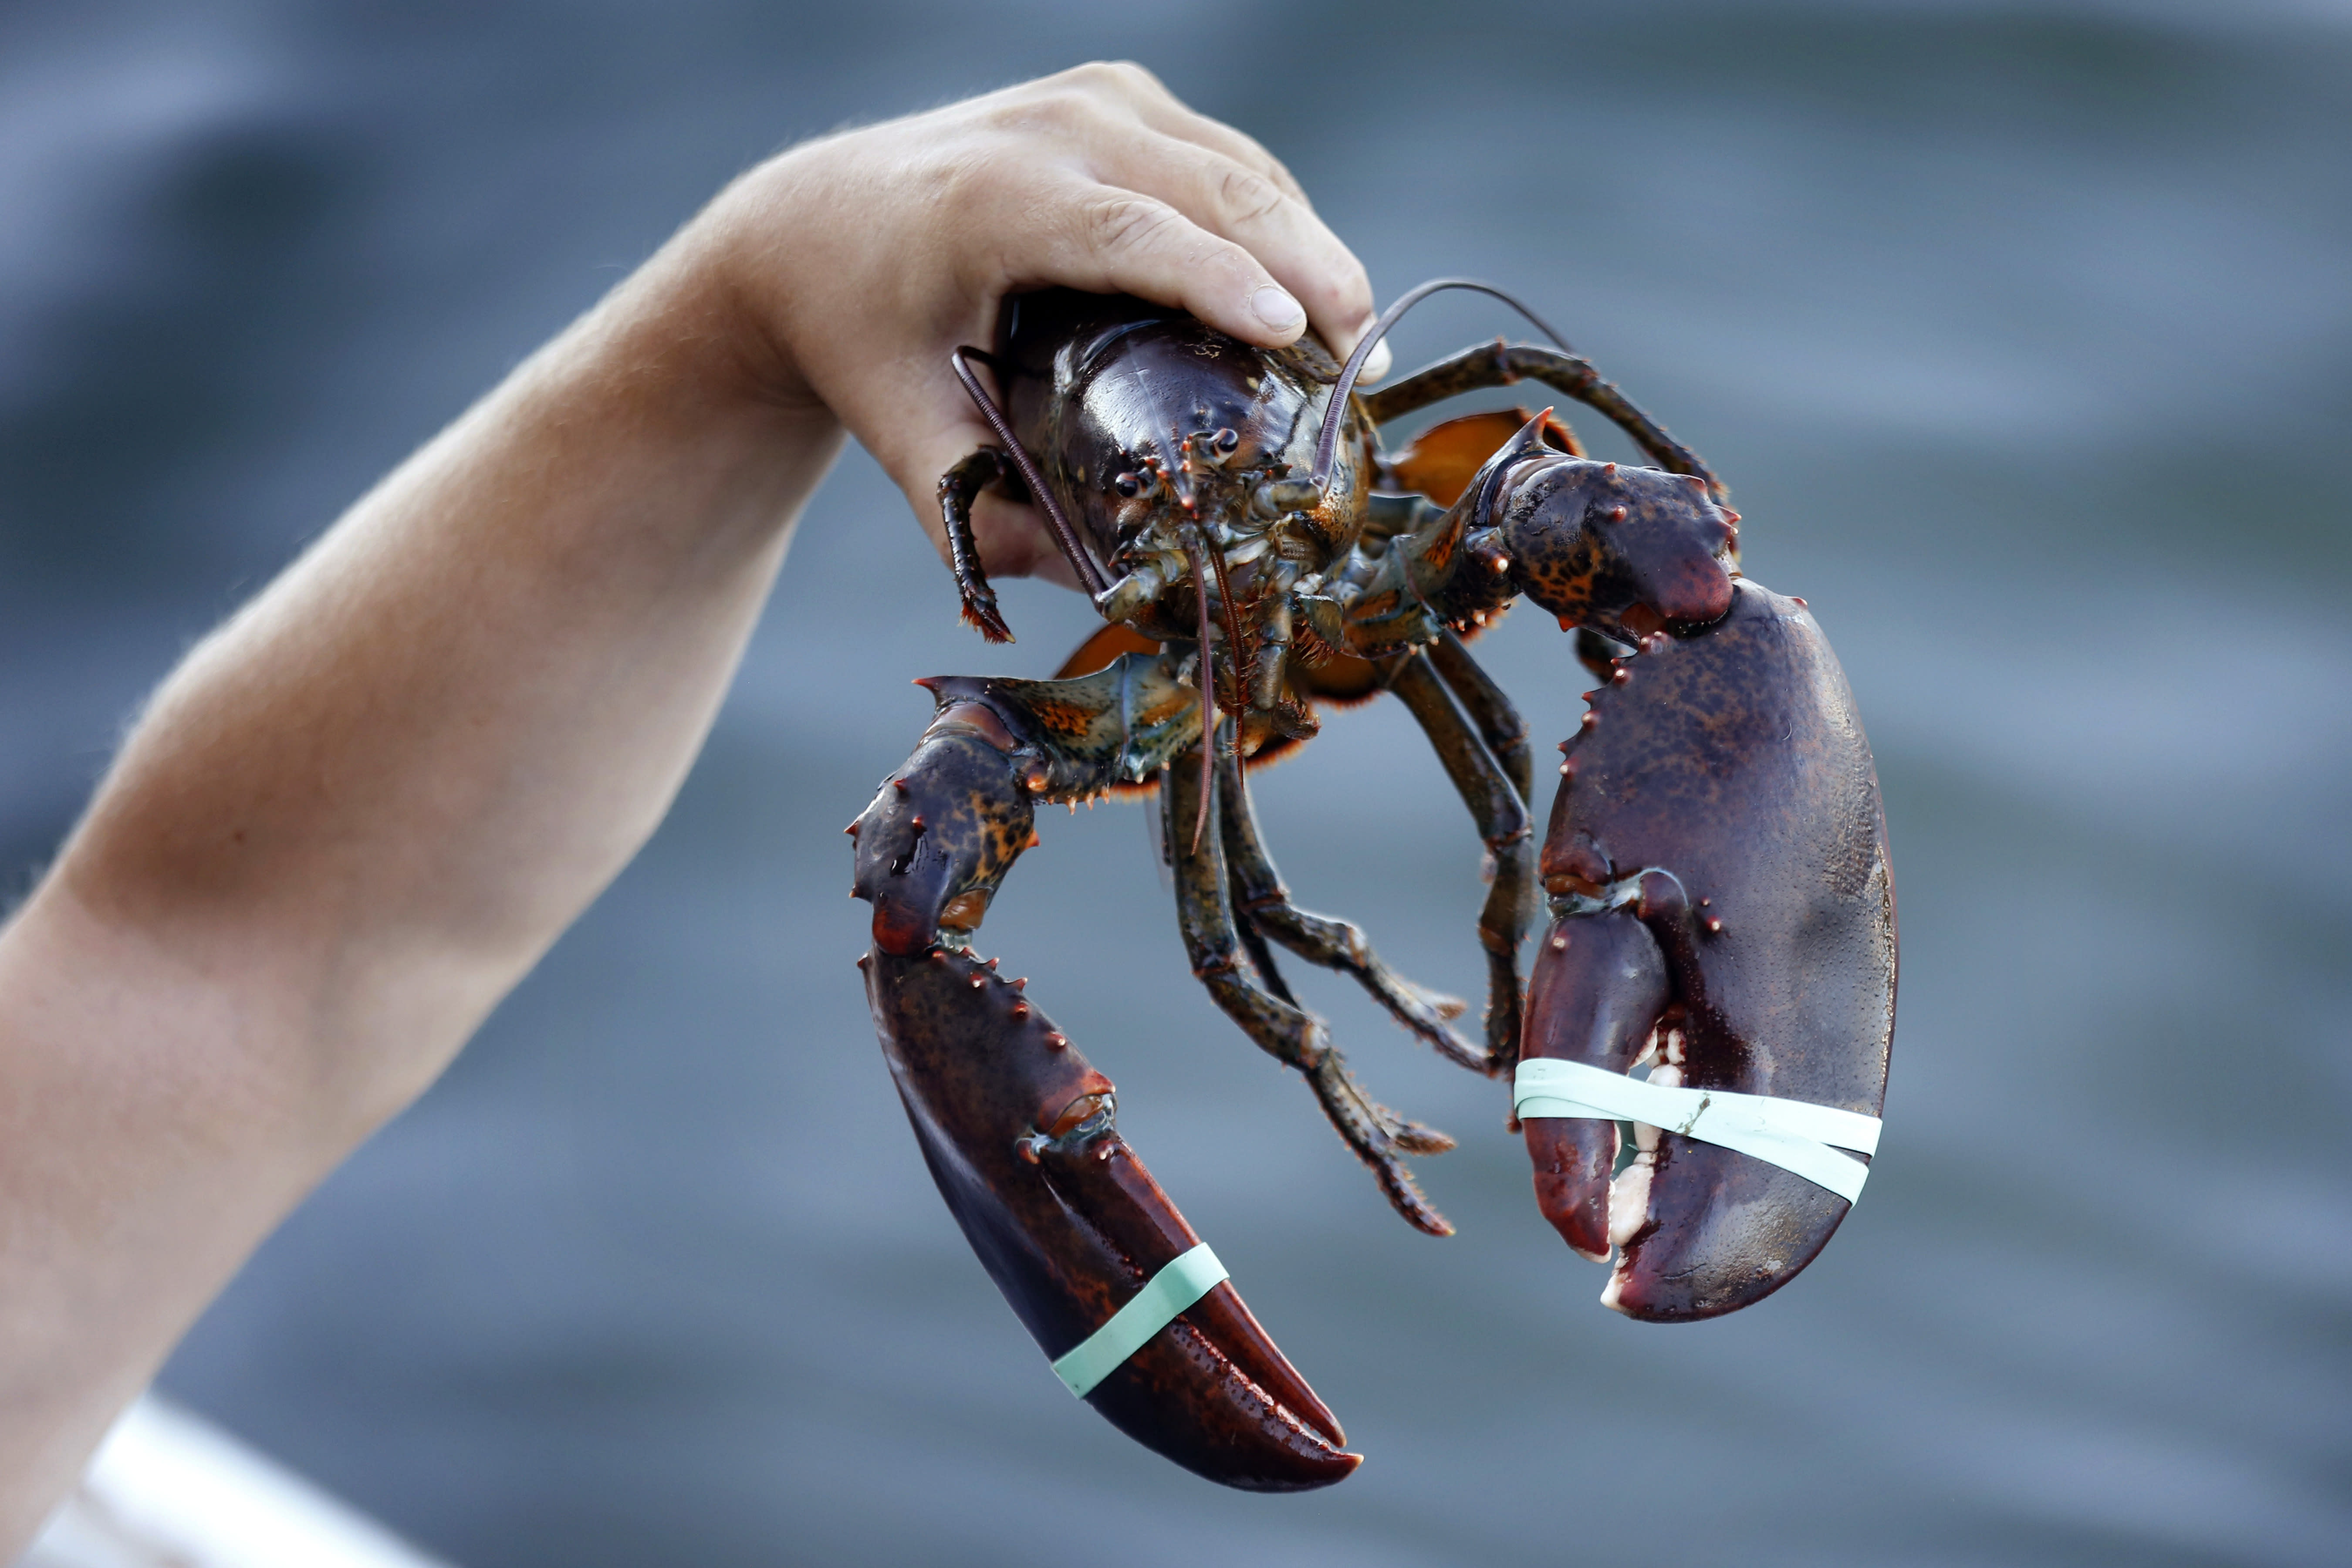 In this Saturday, Aug. 24, 2019, photo a 3.5 pound lobster is held by a dealer at Cape Porpoise in Kennebunkport, Maine. America's lobster exports to China have plummeted this year as new retaliatory tariffs have shifted business to Canada. (AP Photo/Robert F. Bukaty)